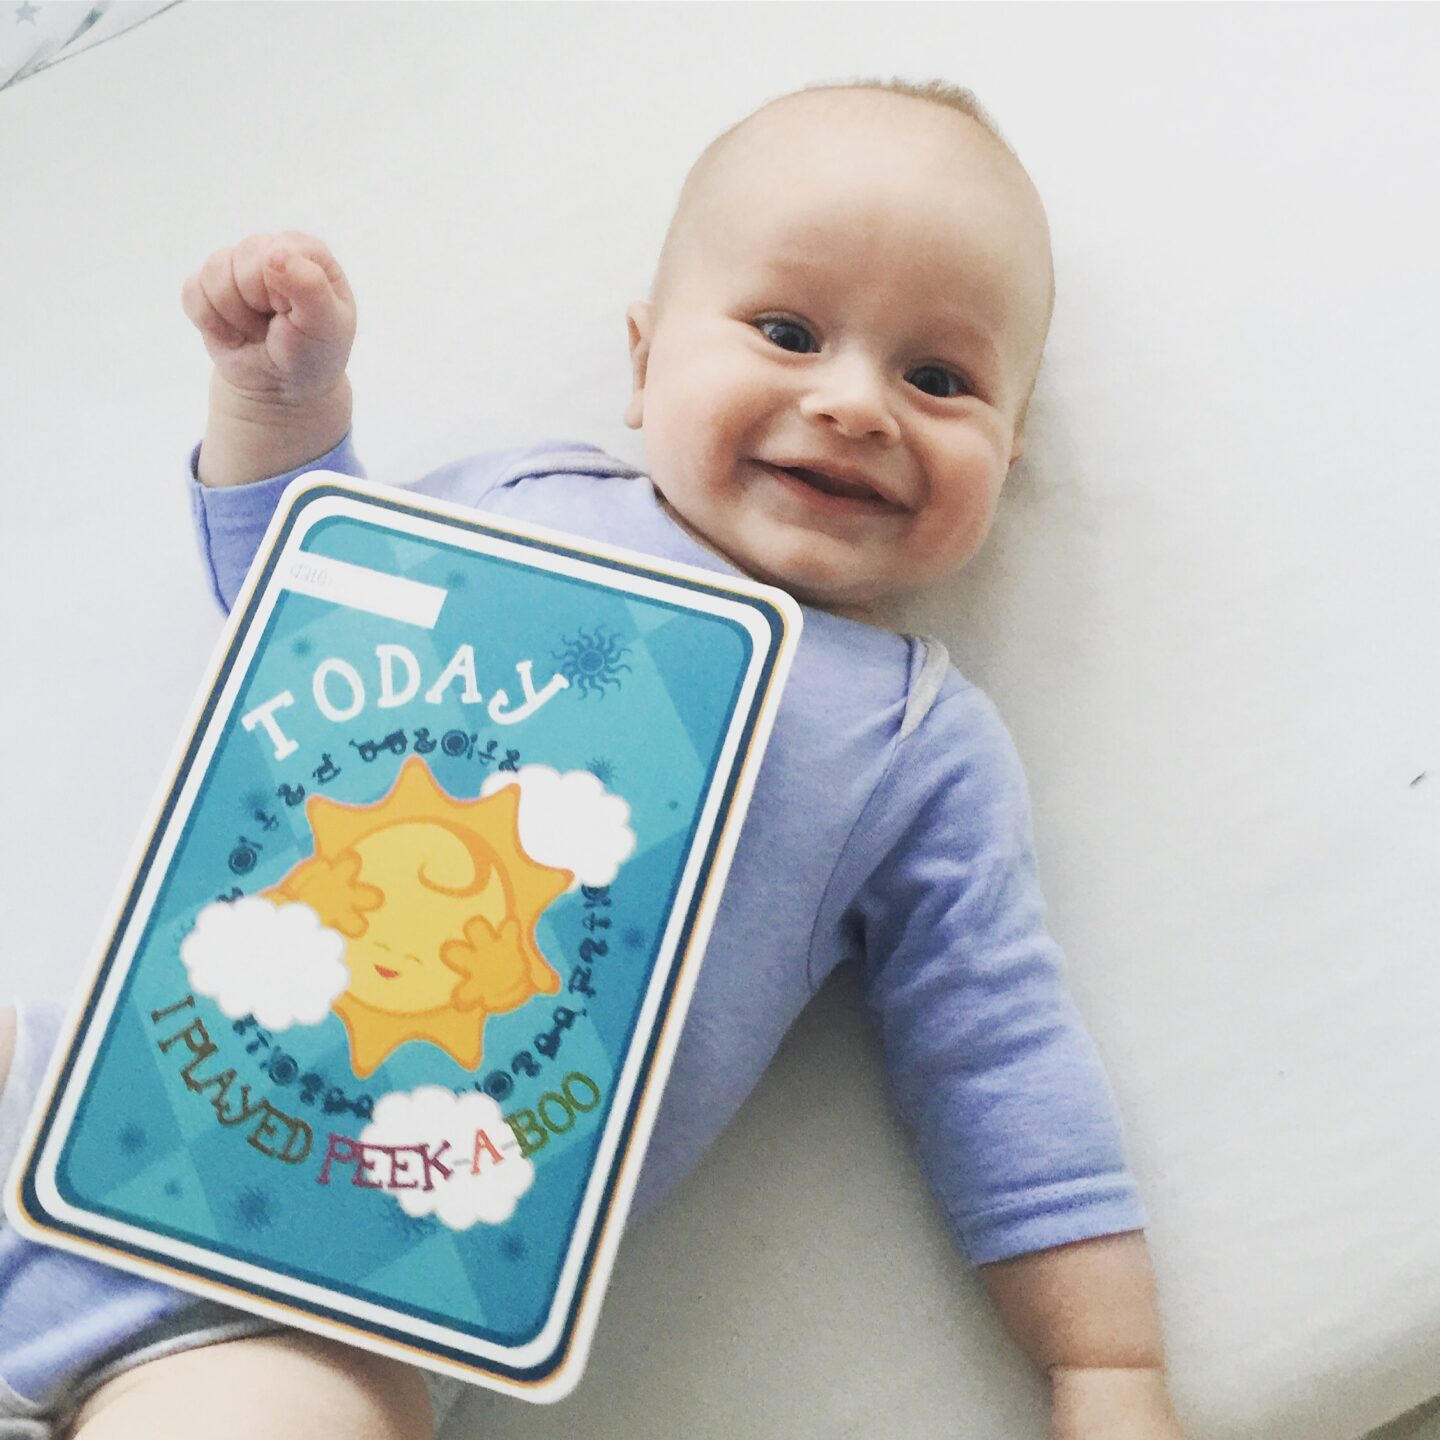 Dexter holding a milestone card that says 'Today I played peek-a-boo for the first time'